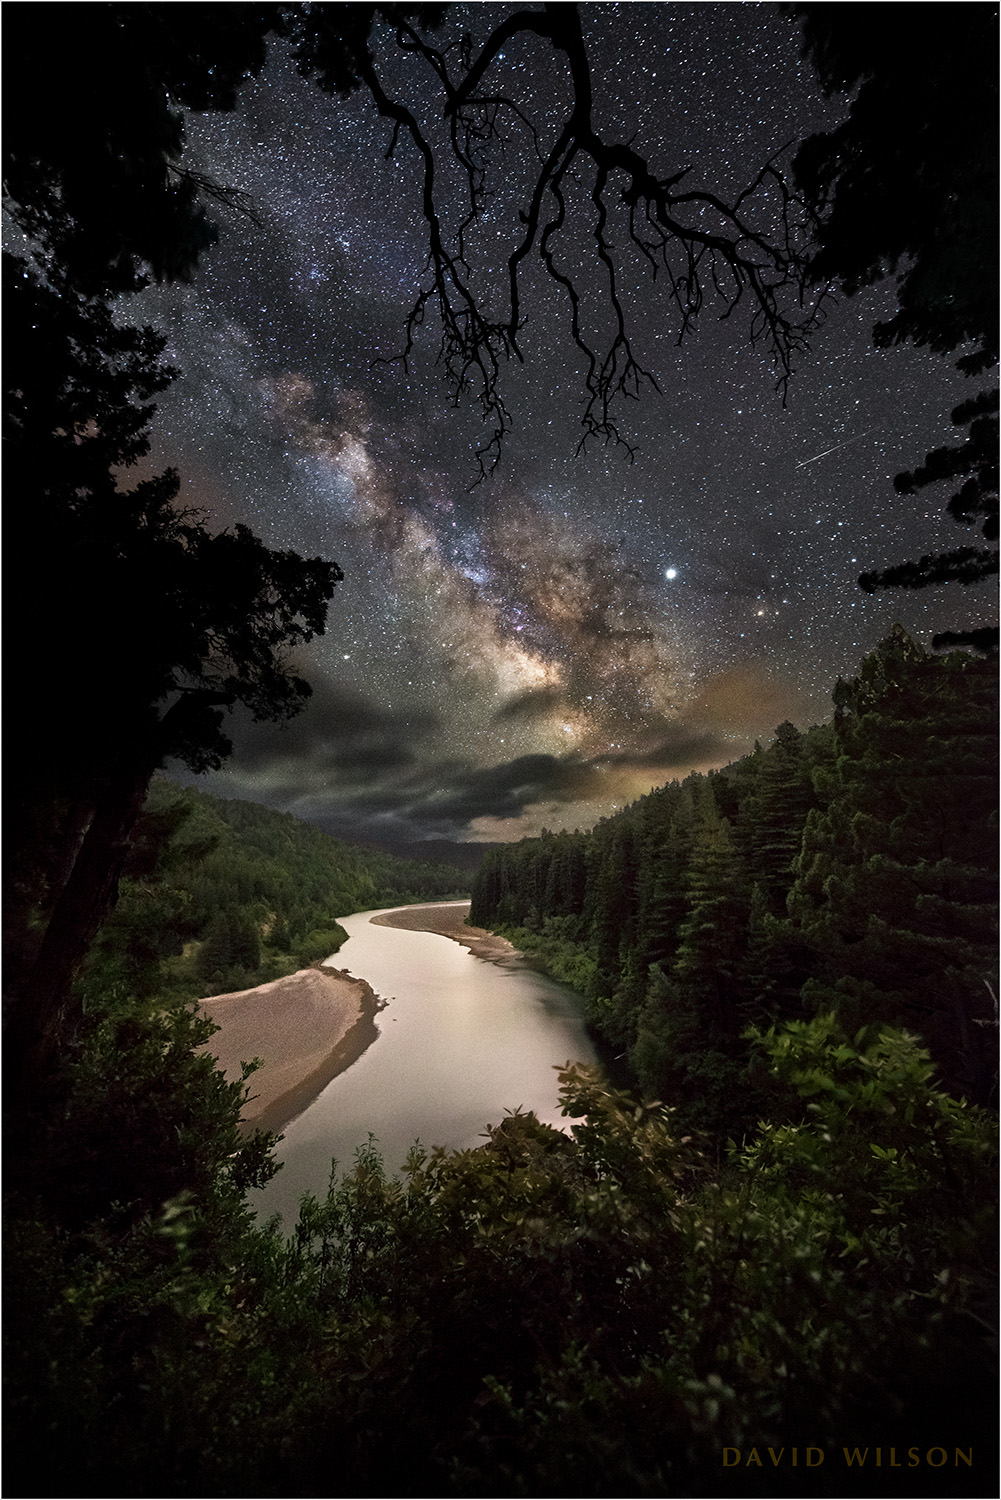 The Eel River glides between Redwood-covered hillsides under the night sky. I was there with a former student and her friend and we played with our cameras while we stood in awe of the night. There was even a shooting star, which I never saw until I examined the photographs later. Humboldt County, California.